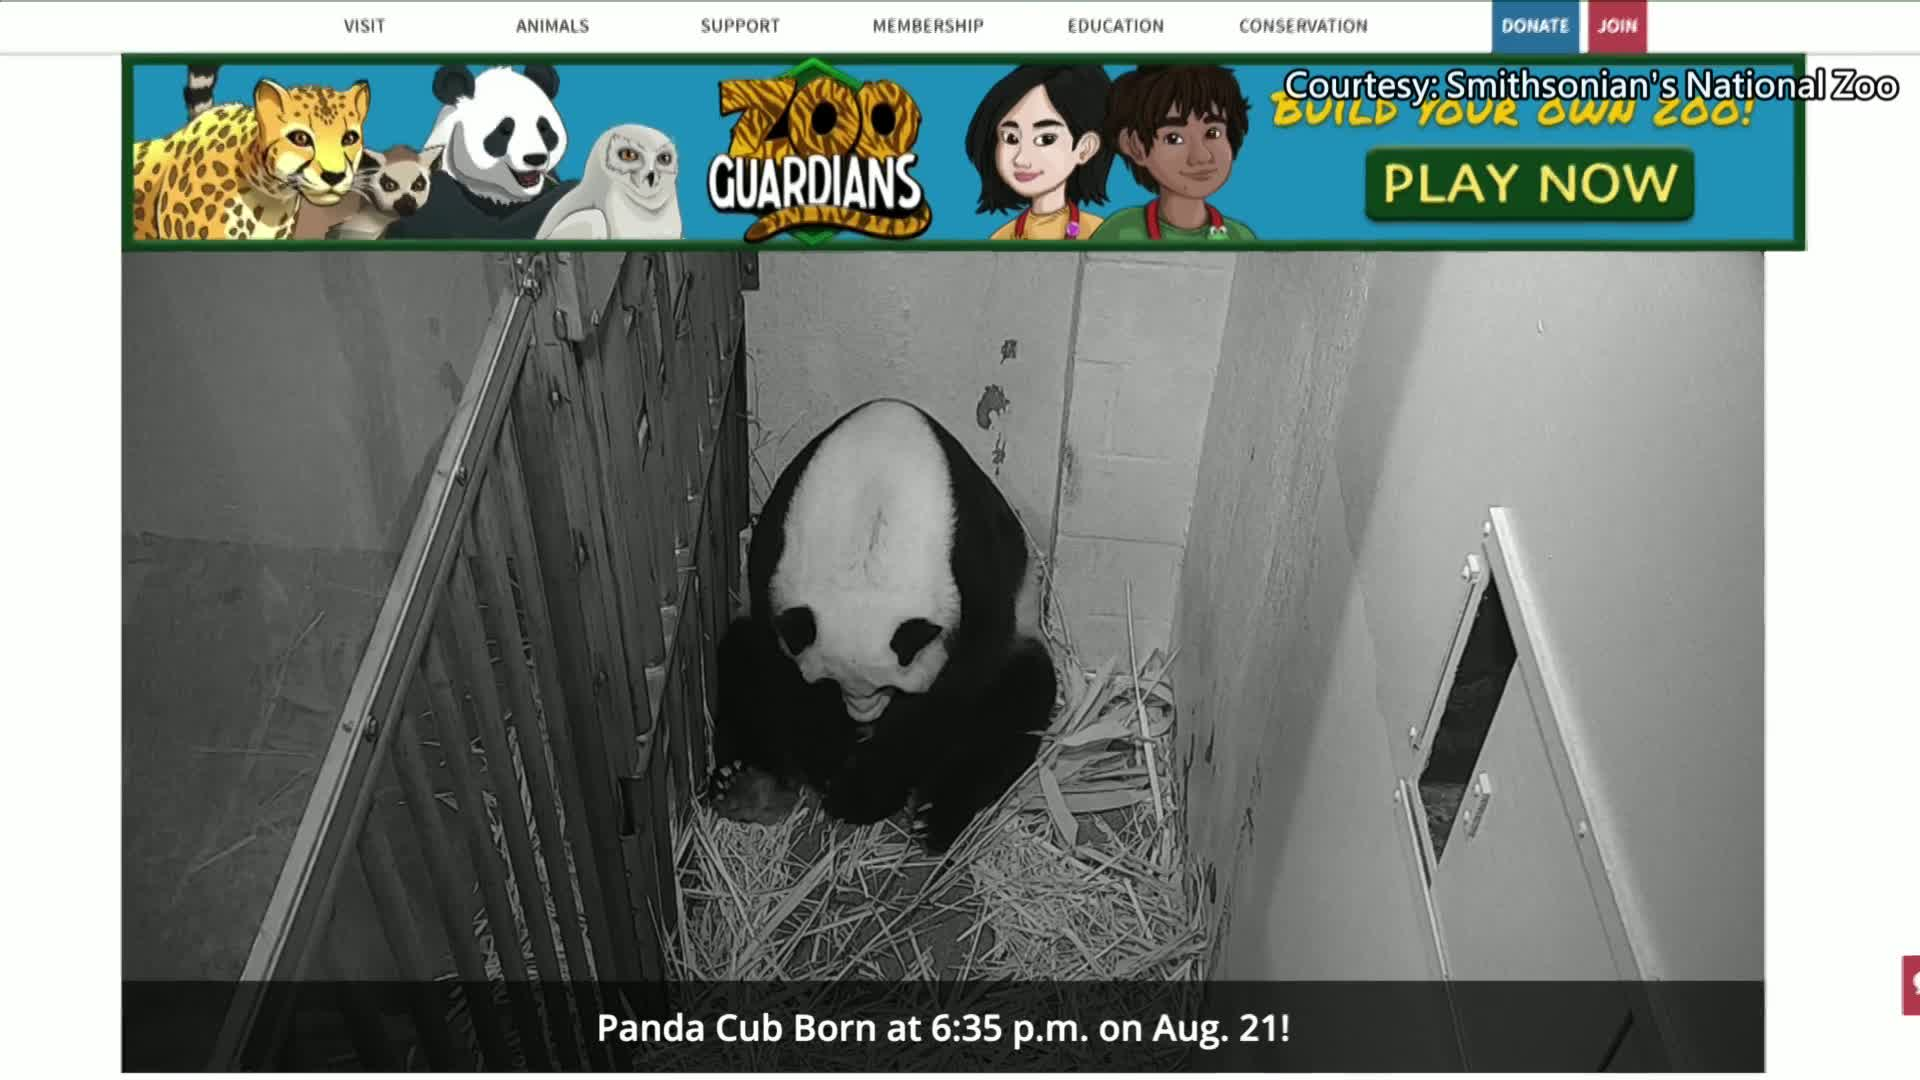 Giant panda Mei Xiang gives birth to cub at U.S. zoo